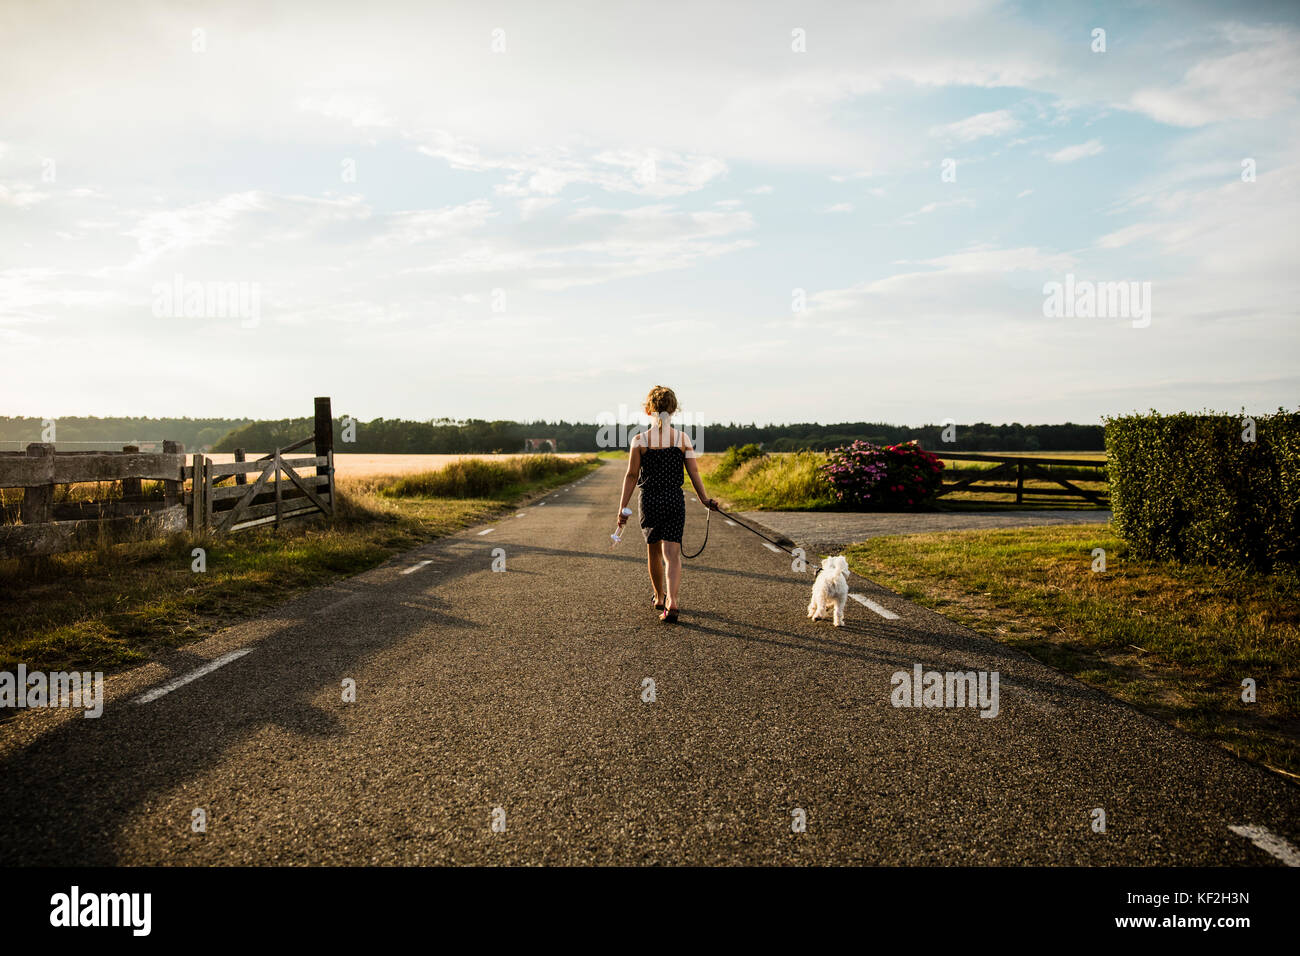 Girl walking with dog on rural road holding miniature wind turbine - Stock Image